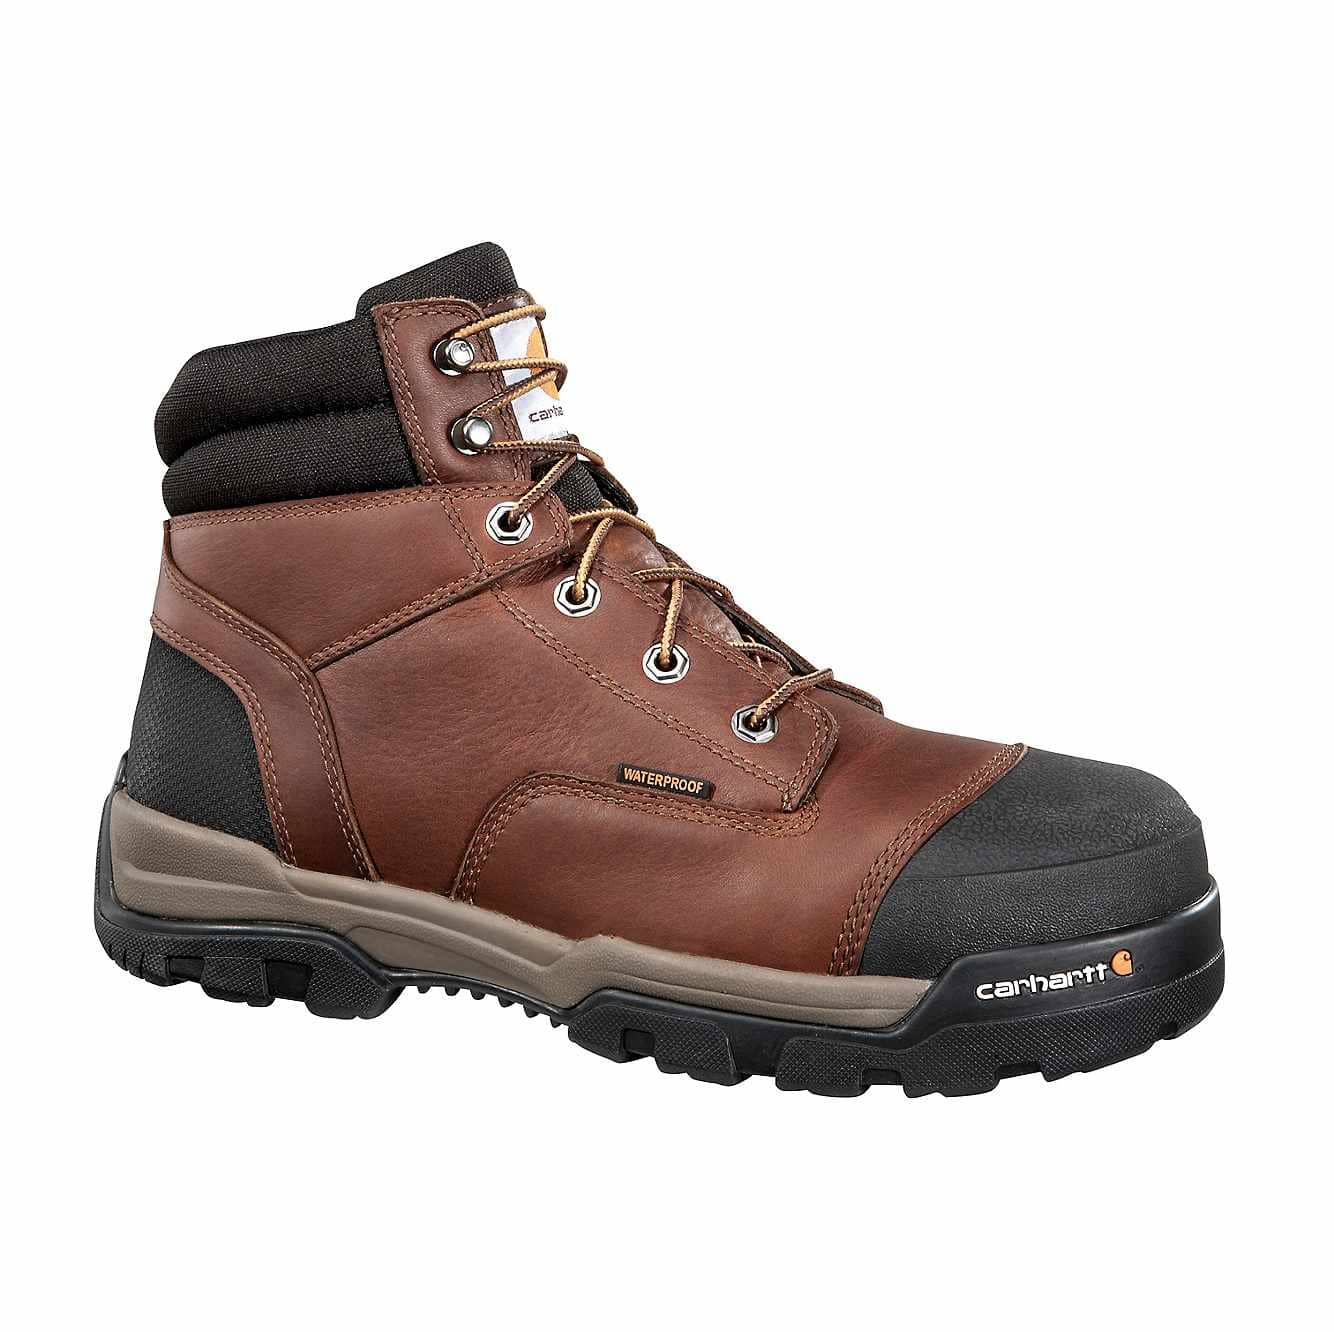 Picture of Ground Force 6-Inch Composite Toe Work Boot in Brown Oil Tanned